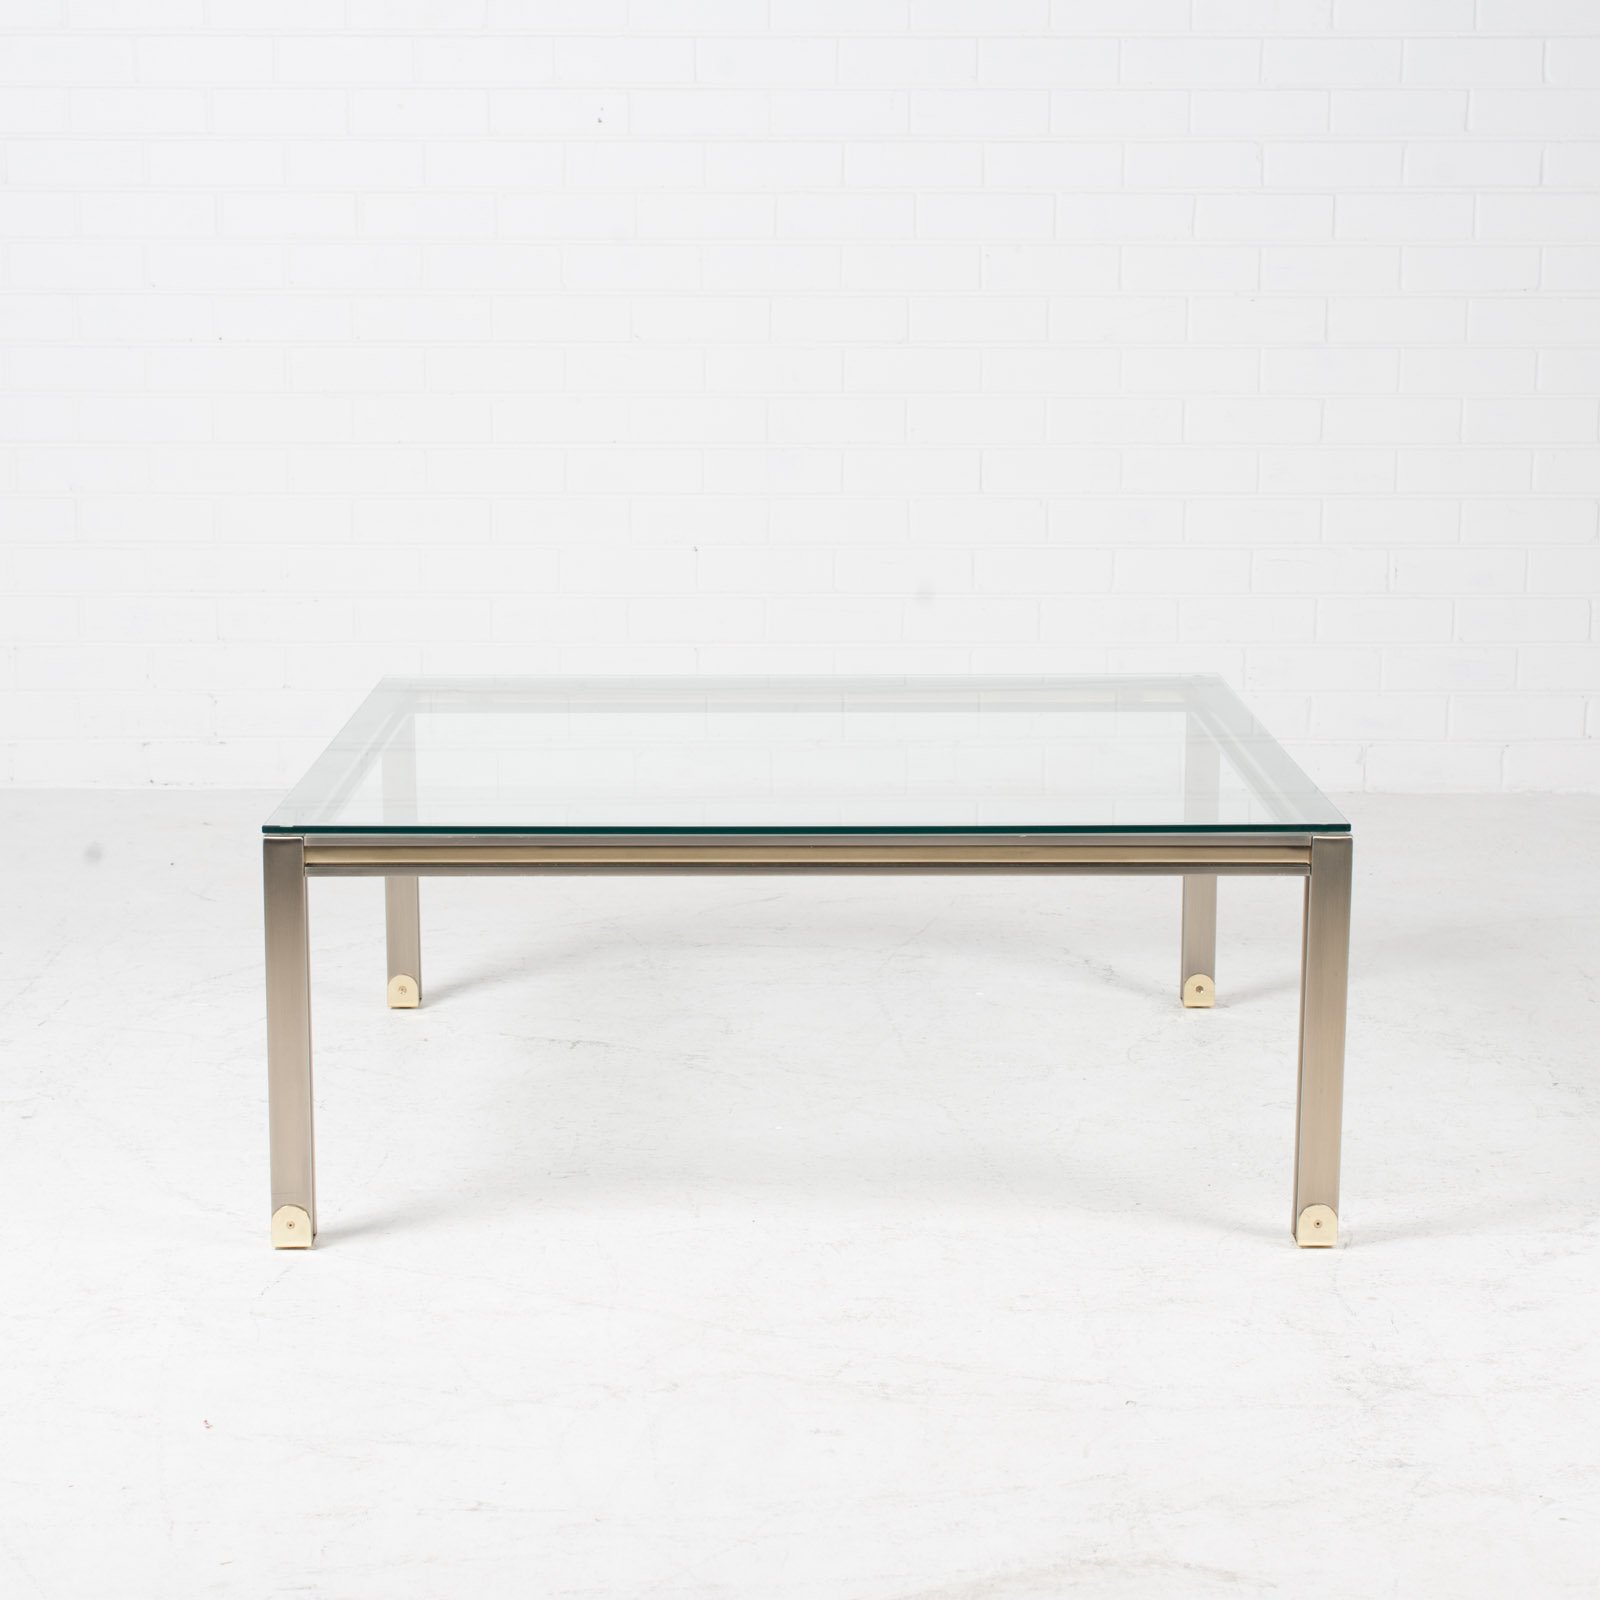 Coffee Table By Romeo Rega In Chrome And Brass 1970s Italy 02